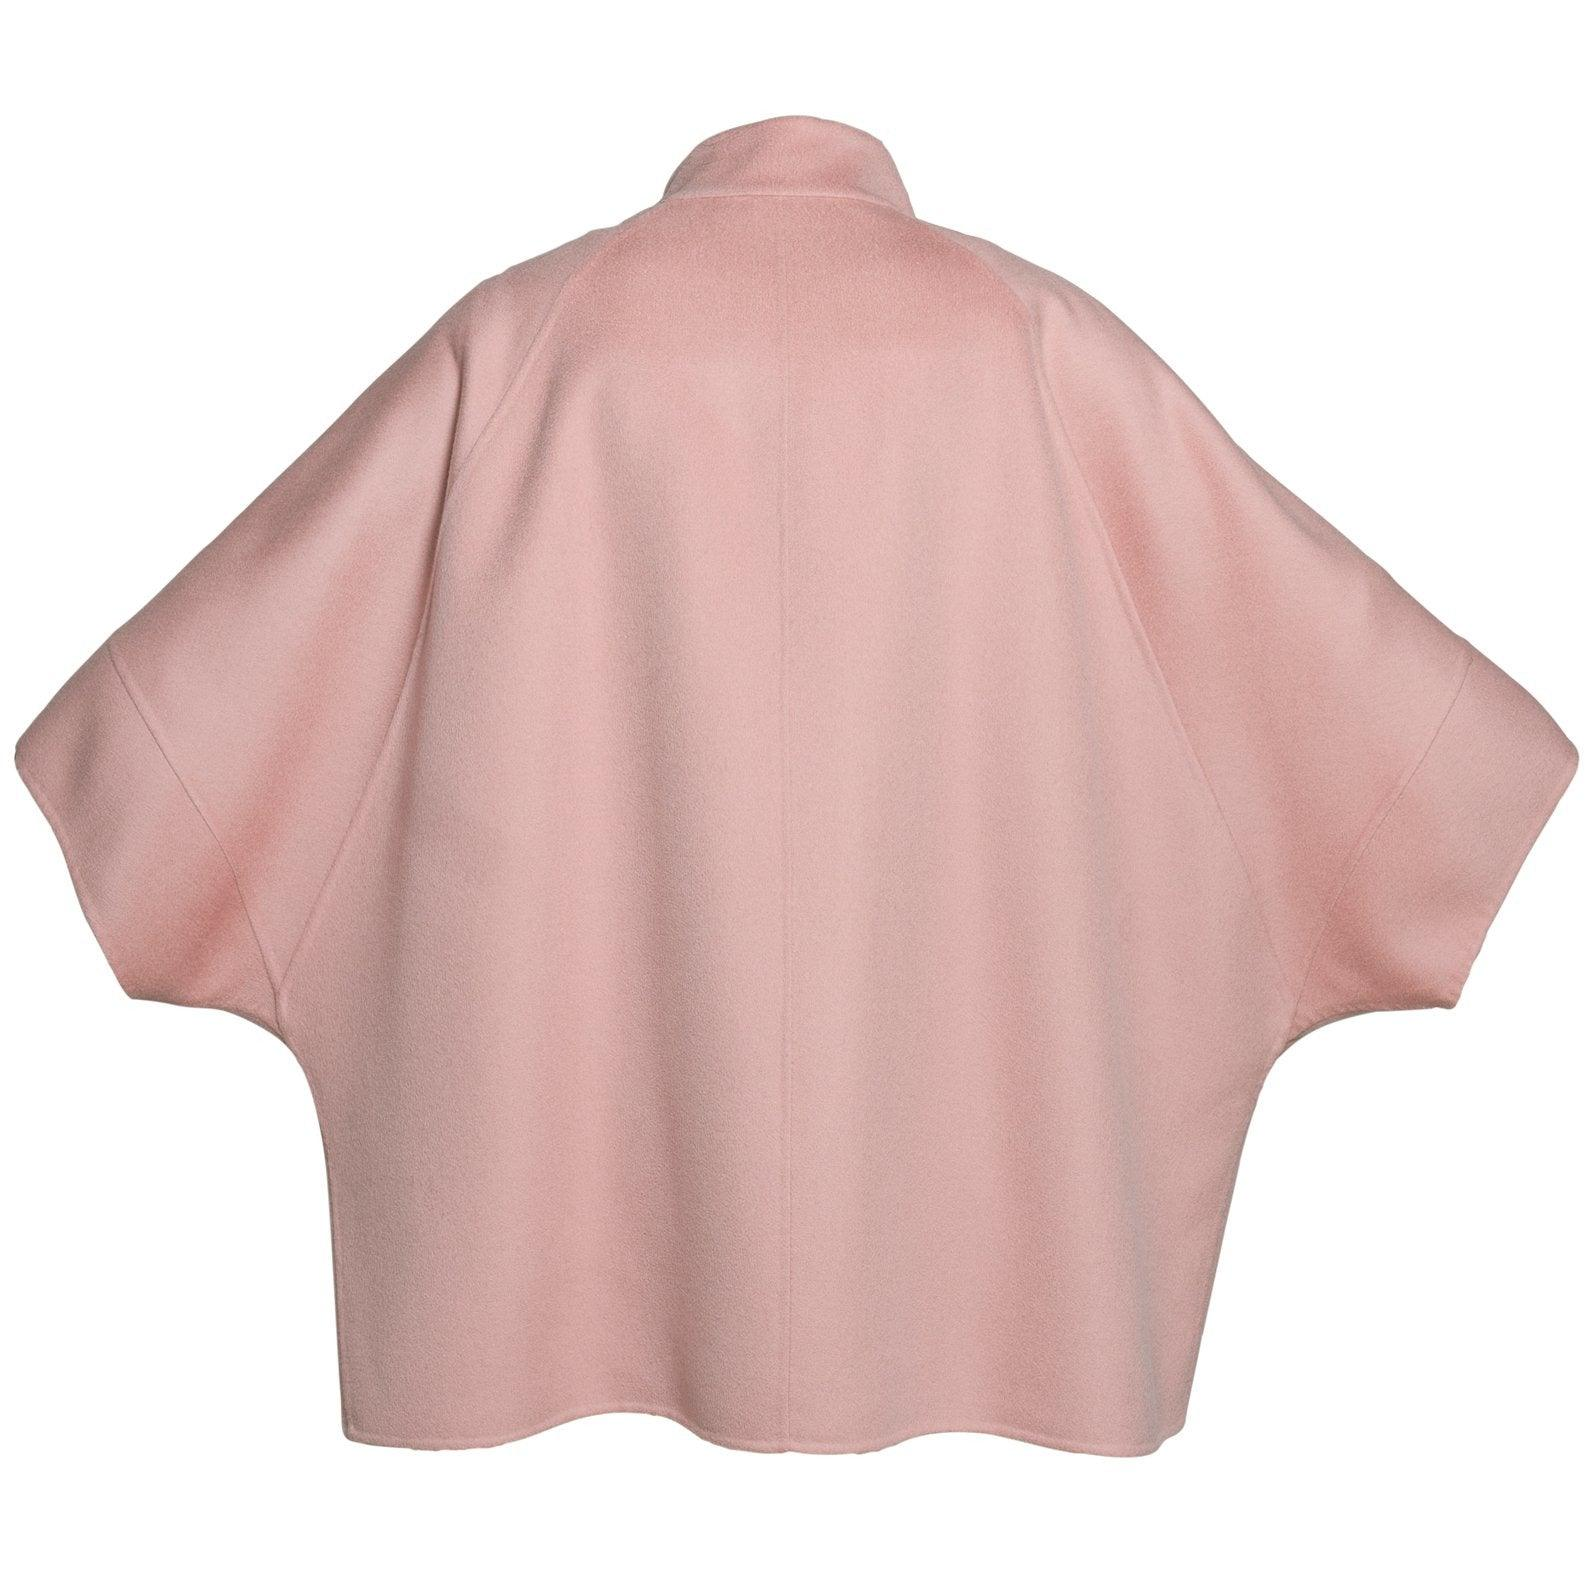 REVERSIBLE CASHMERE CAPE WITH MINK COLLAR - ROS1854 New 2020 Collection